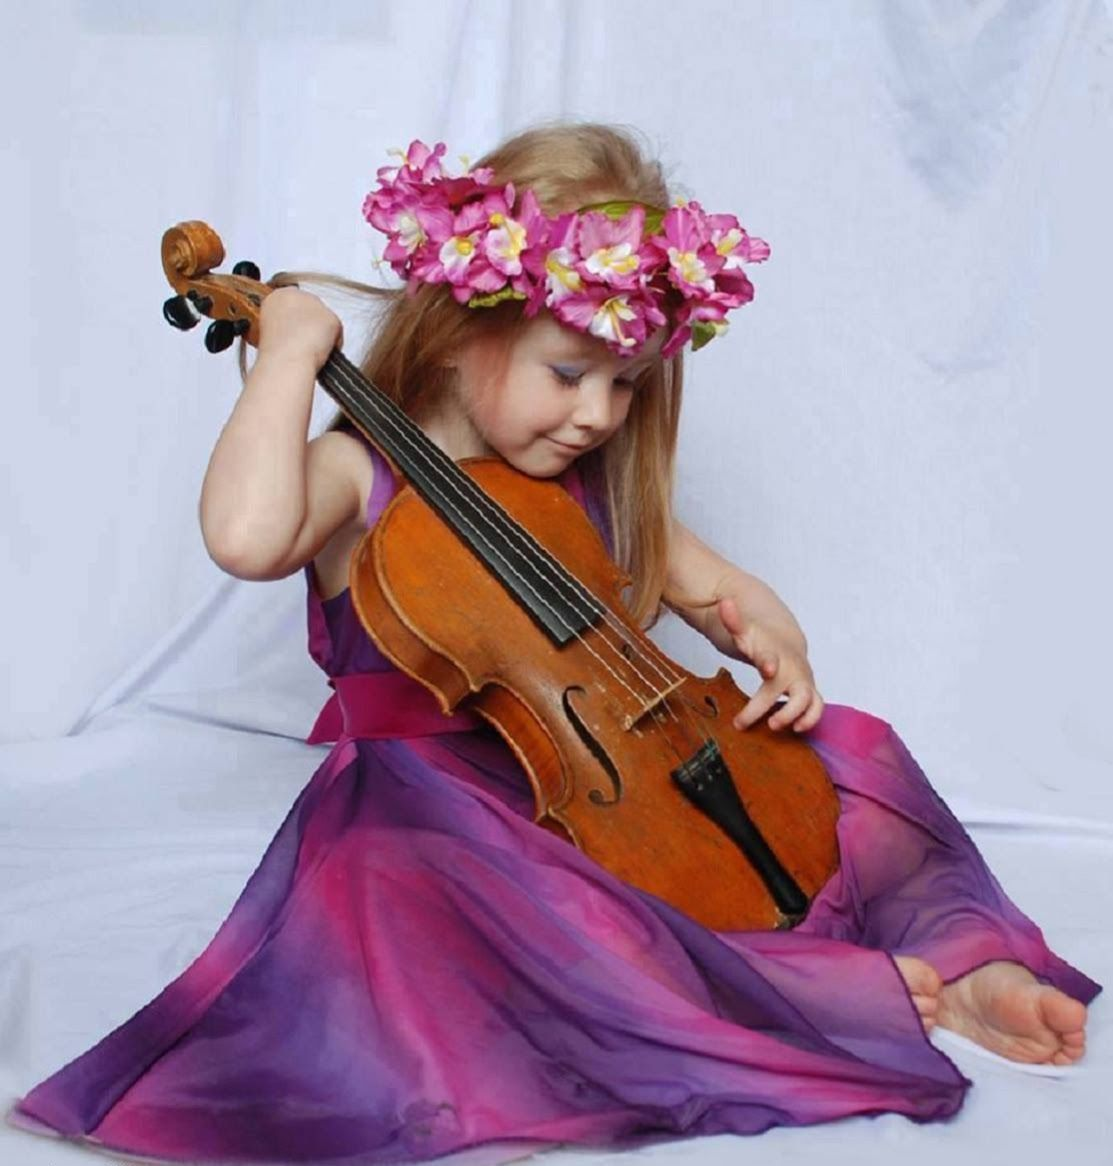 ✧❂✧MusiC LovE♥ ⋱‿ ❤AnE LeeLA⋱♪♫ We HavE ᵐᵘˢᶤᶜ ᶤᶰ OUR Sᵒᵘˡ¸¸.•*¨*•♫♪ ...:)